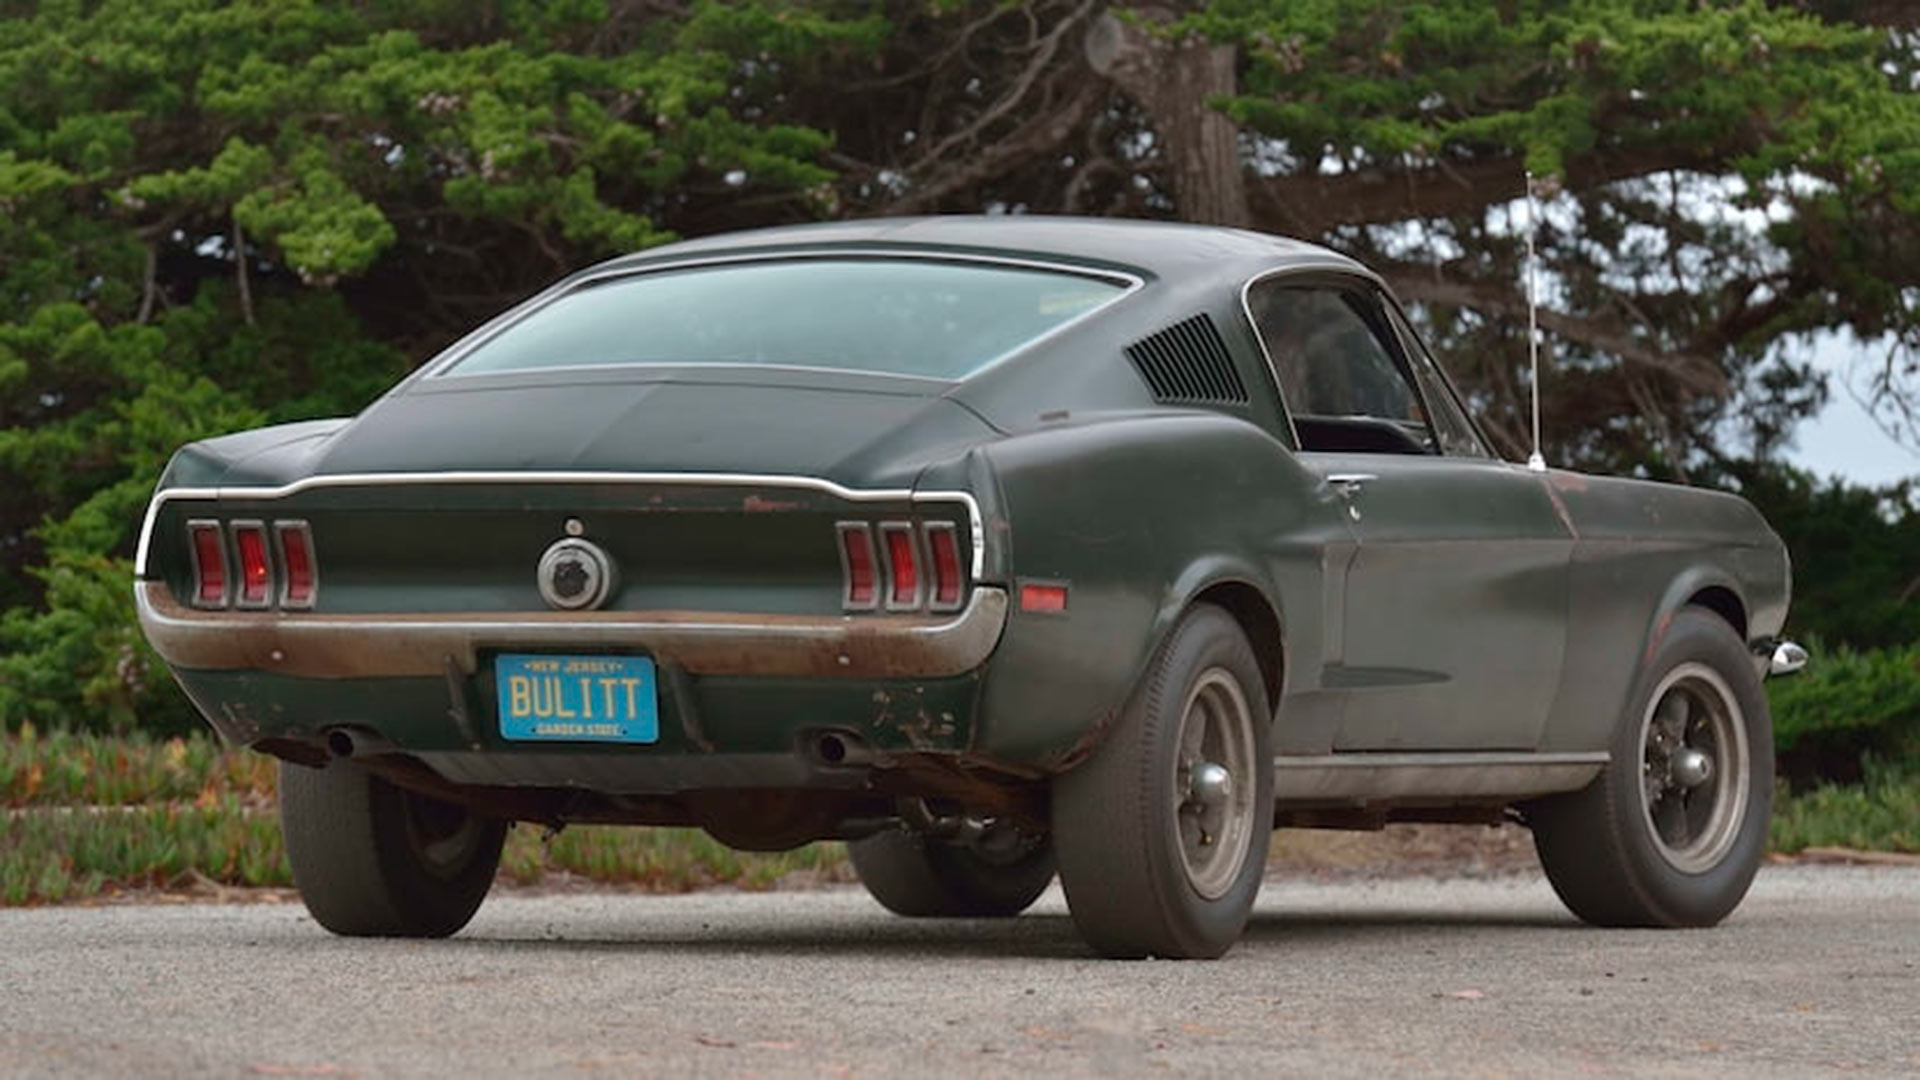 Original Bullitt Mustang sells at Mecum Auction